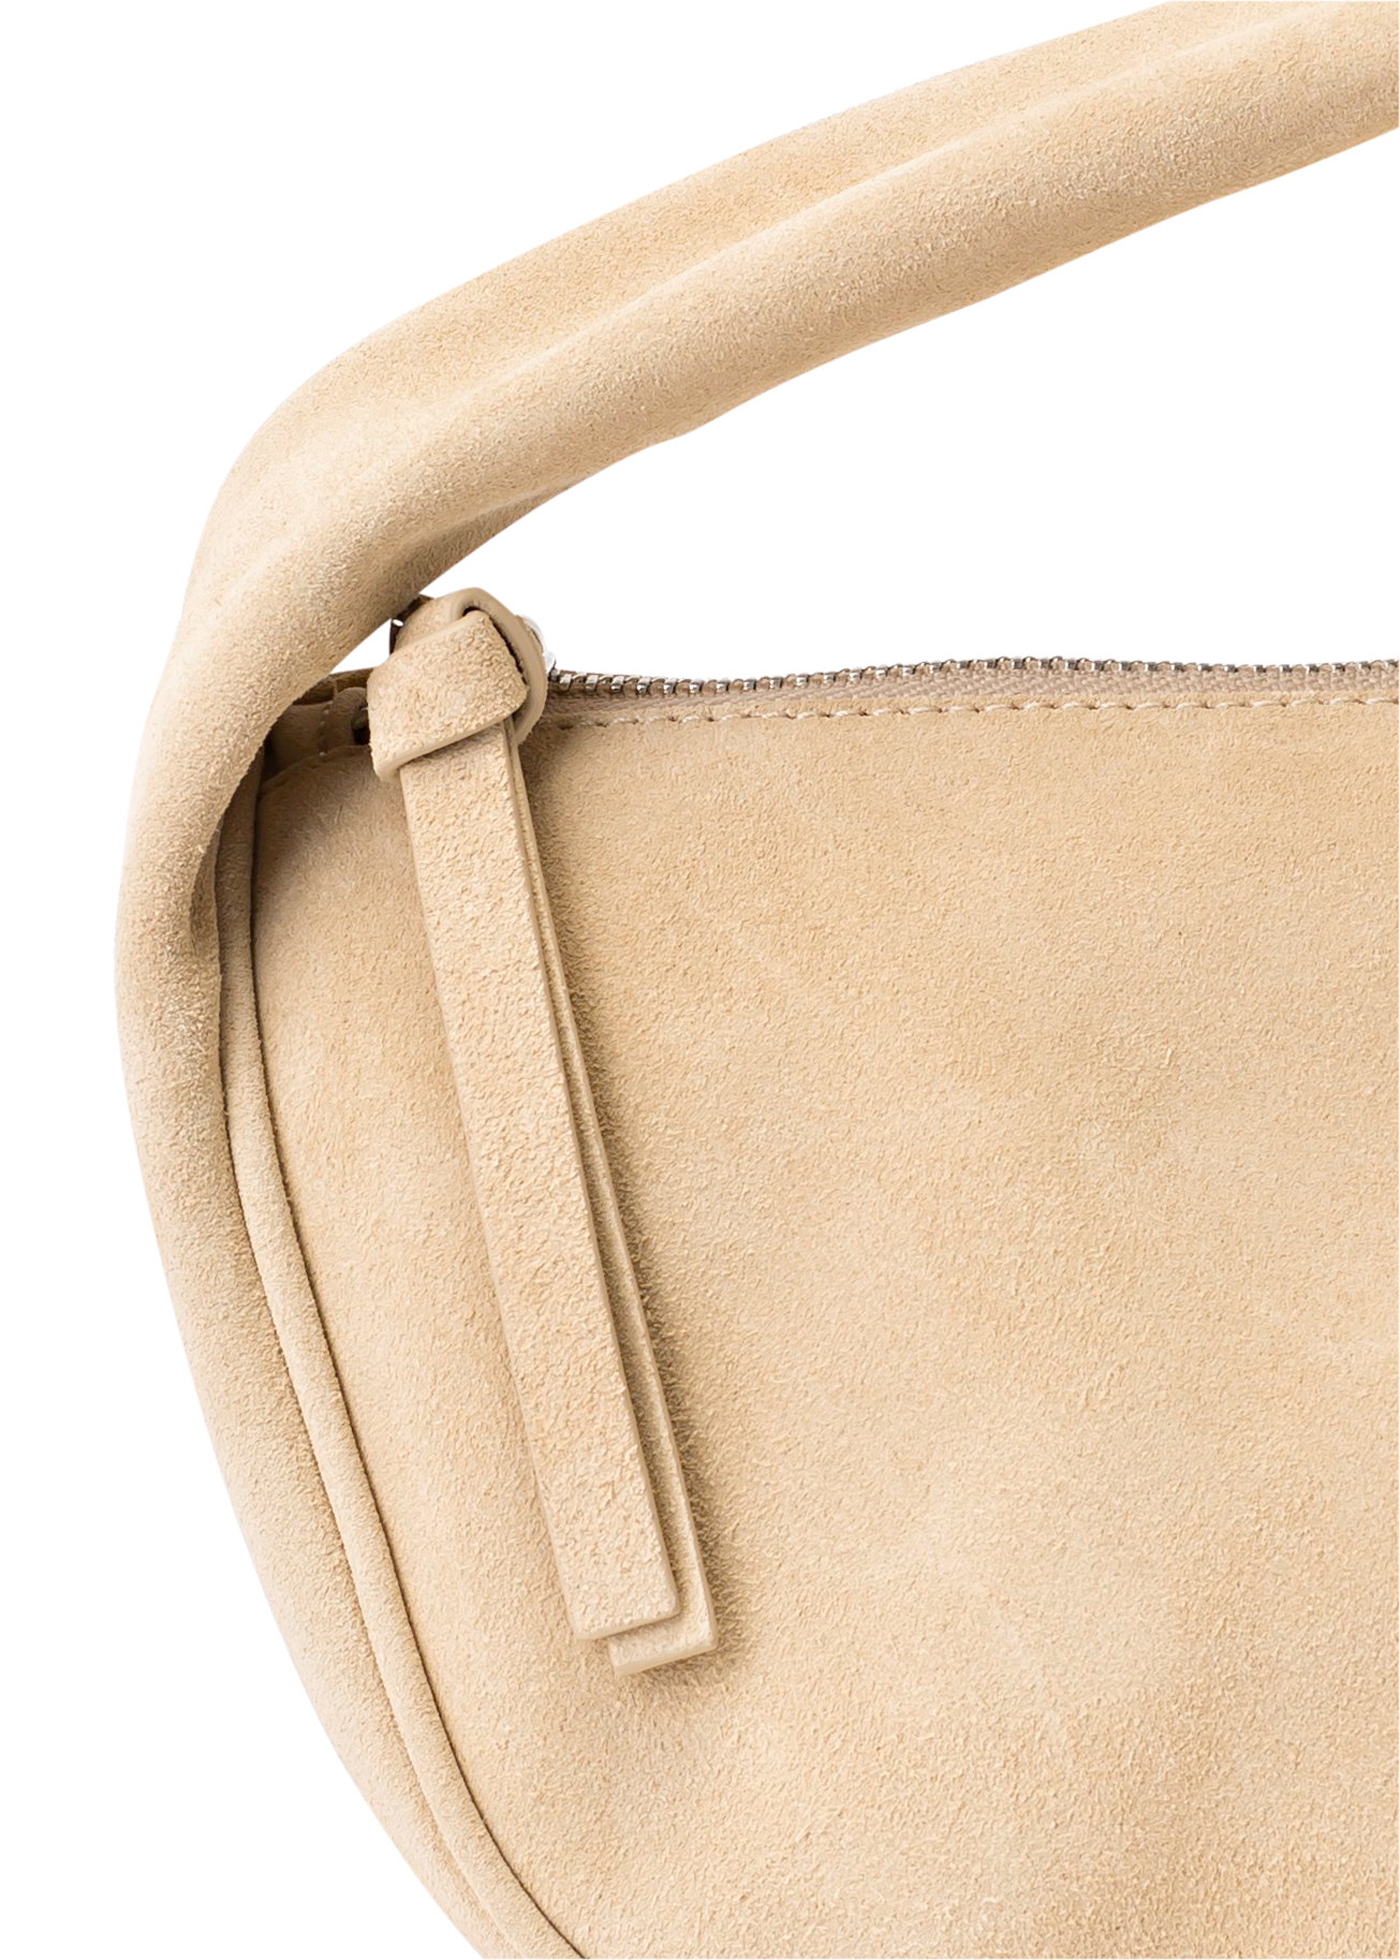 Cush Cappuccino Suede Leather image number 2